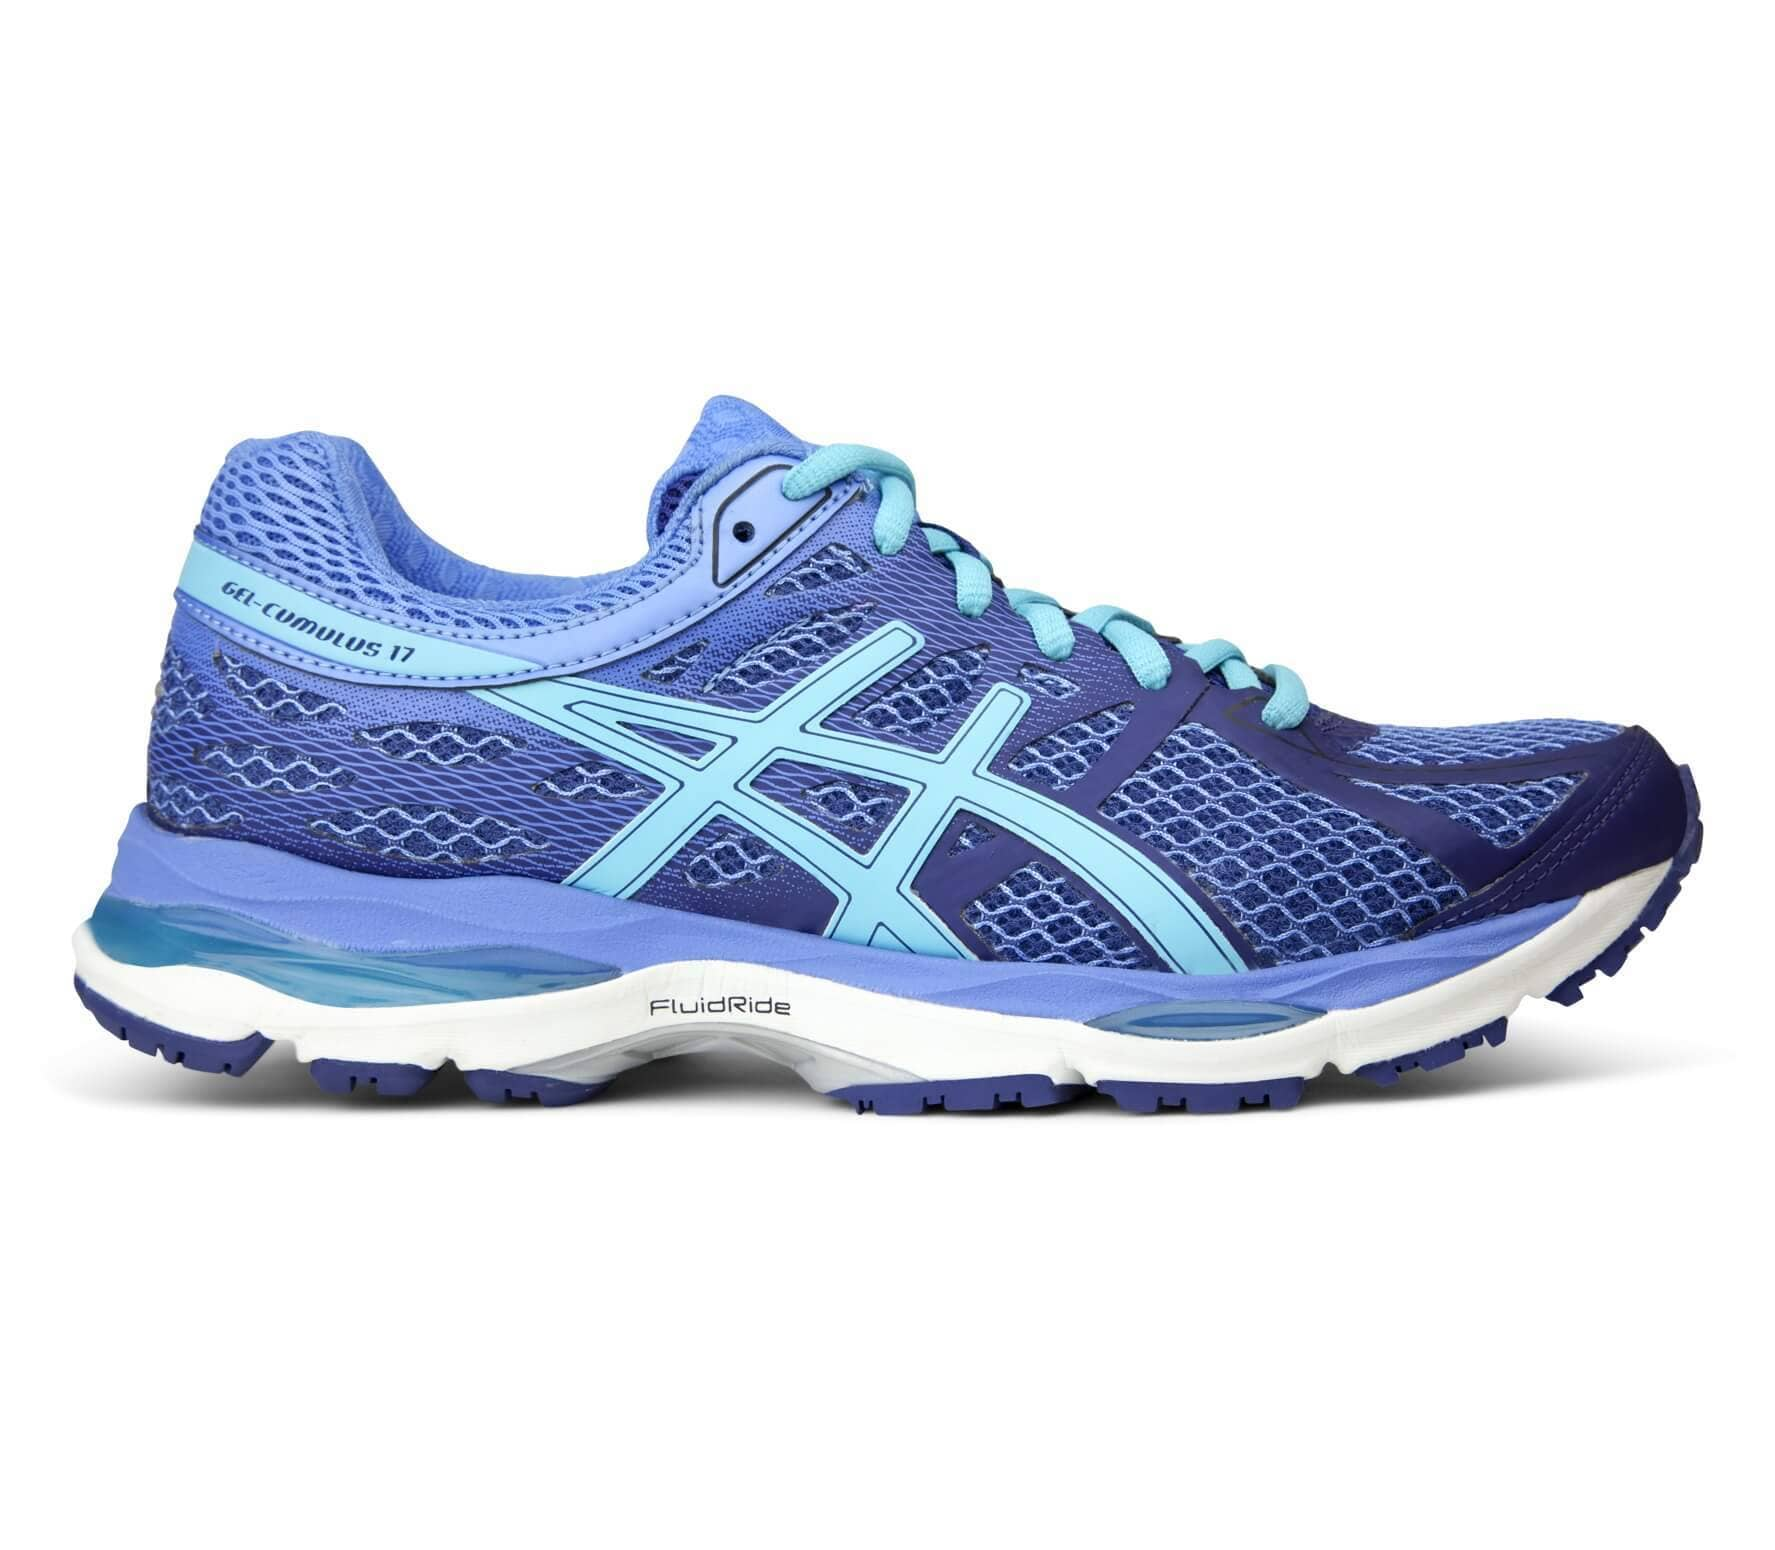 le dernier 26eed 73859 ASICS Gel-Cumulus 17 women's running shoes Women